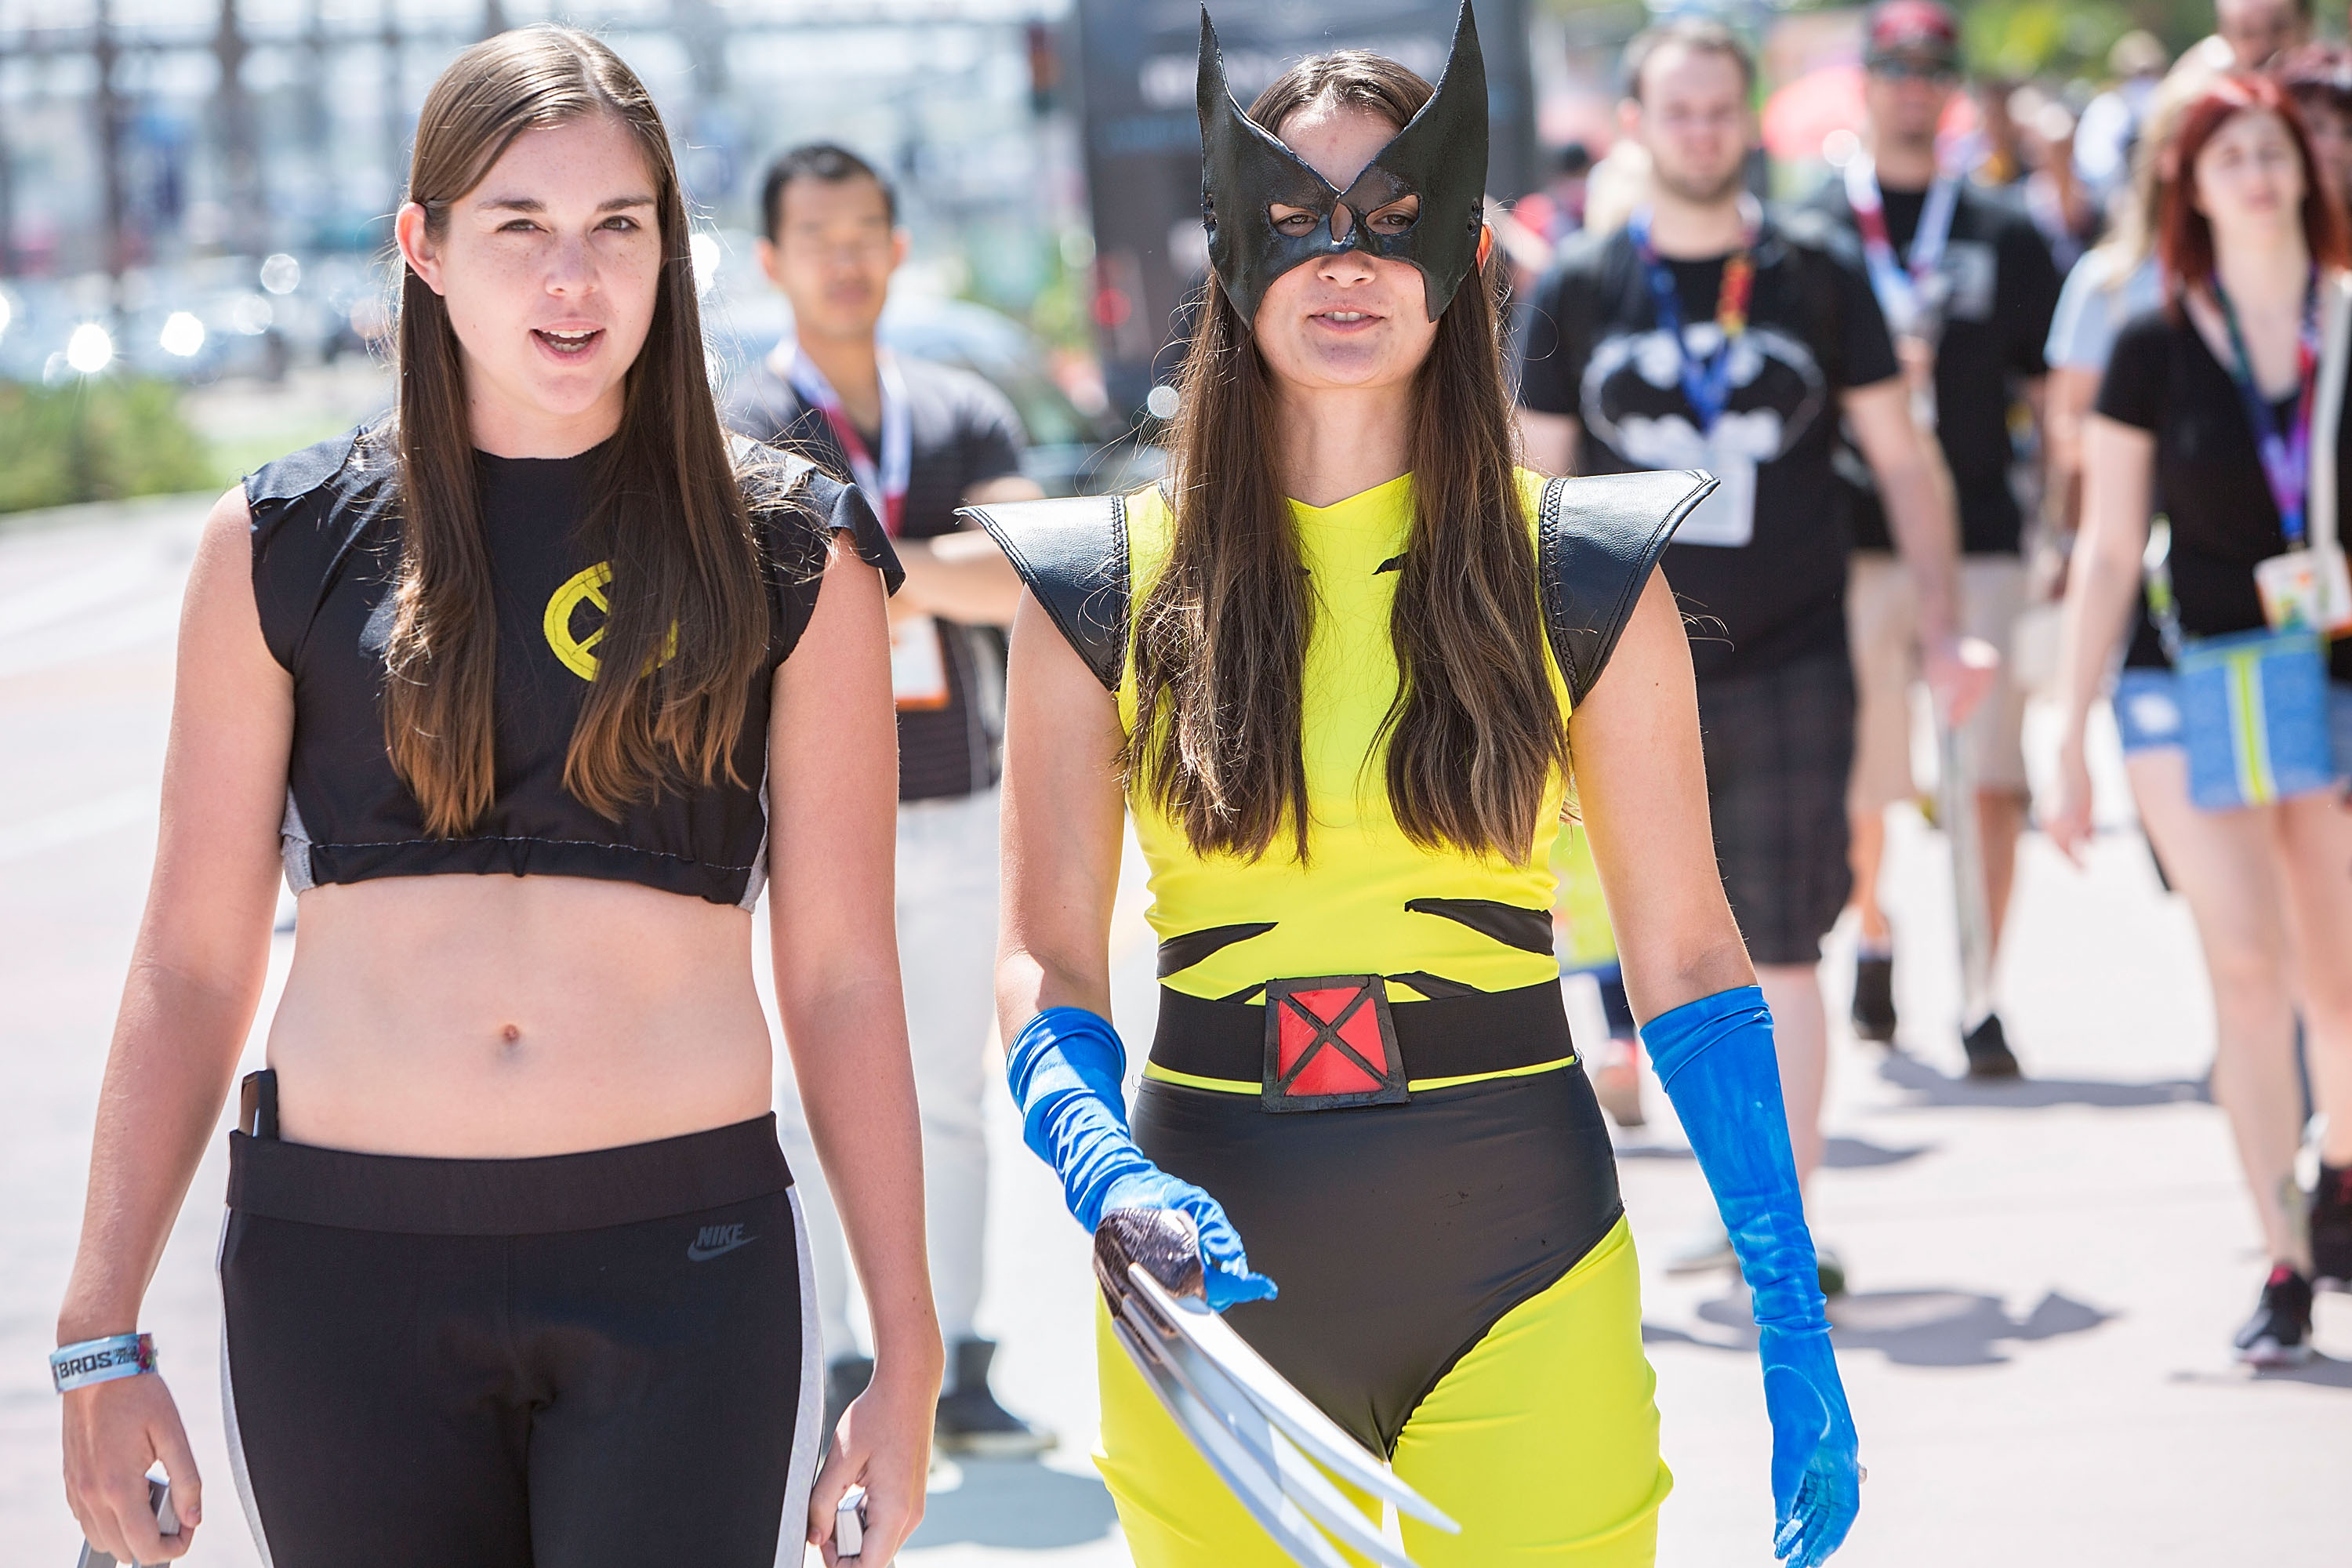 SAN DIEGO, CA - JULY 10:  Costumed fans attend Comic-Con International at San Diego Convention Center on July 10, 2015 in San